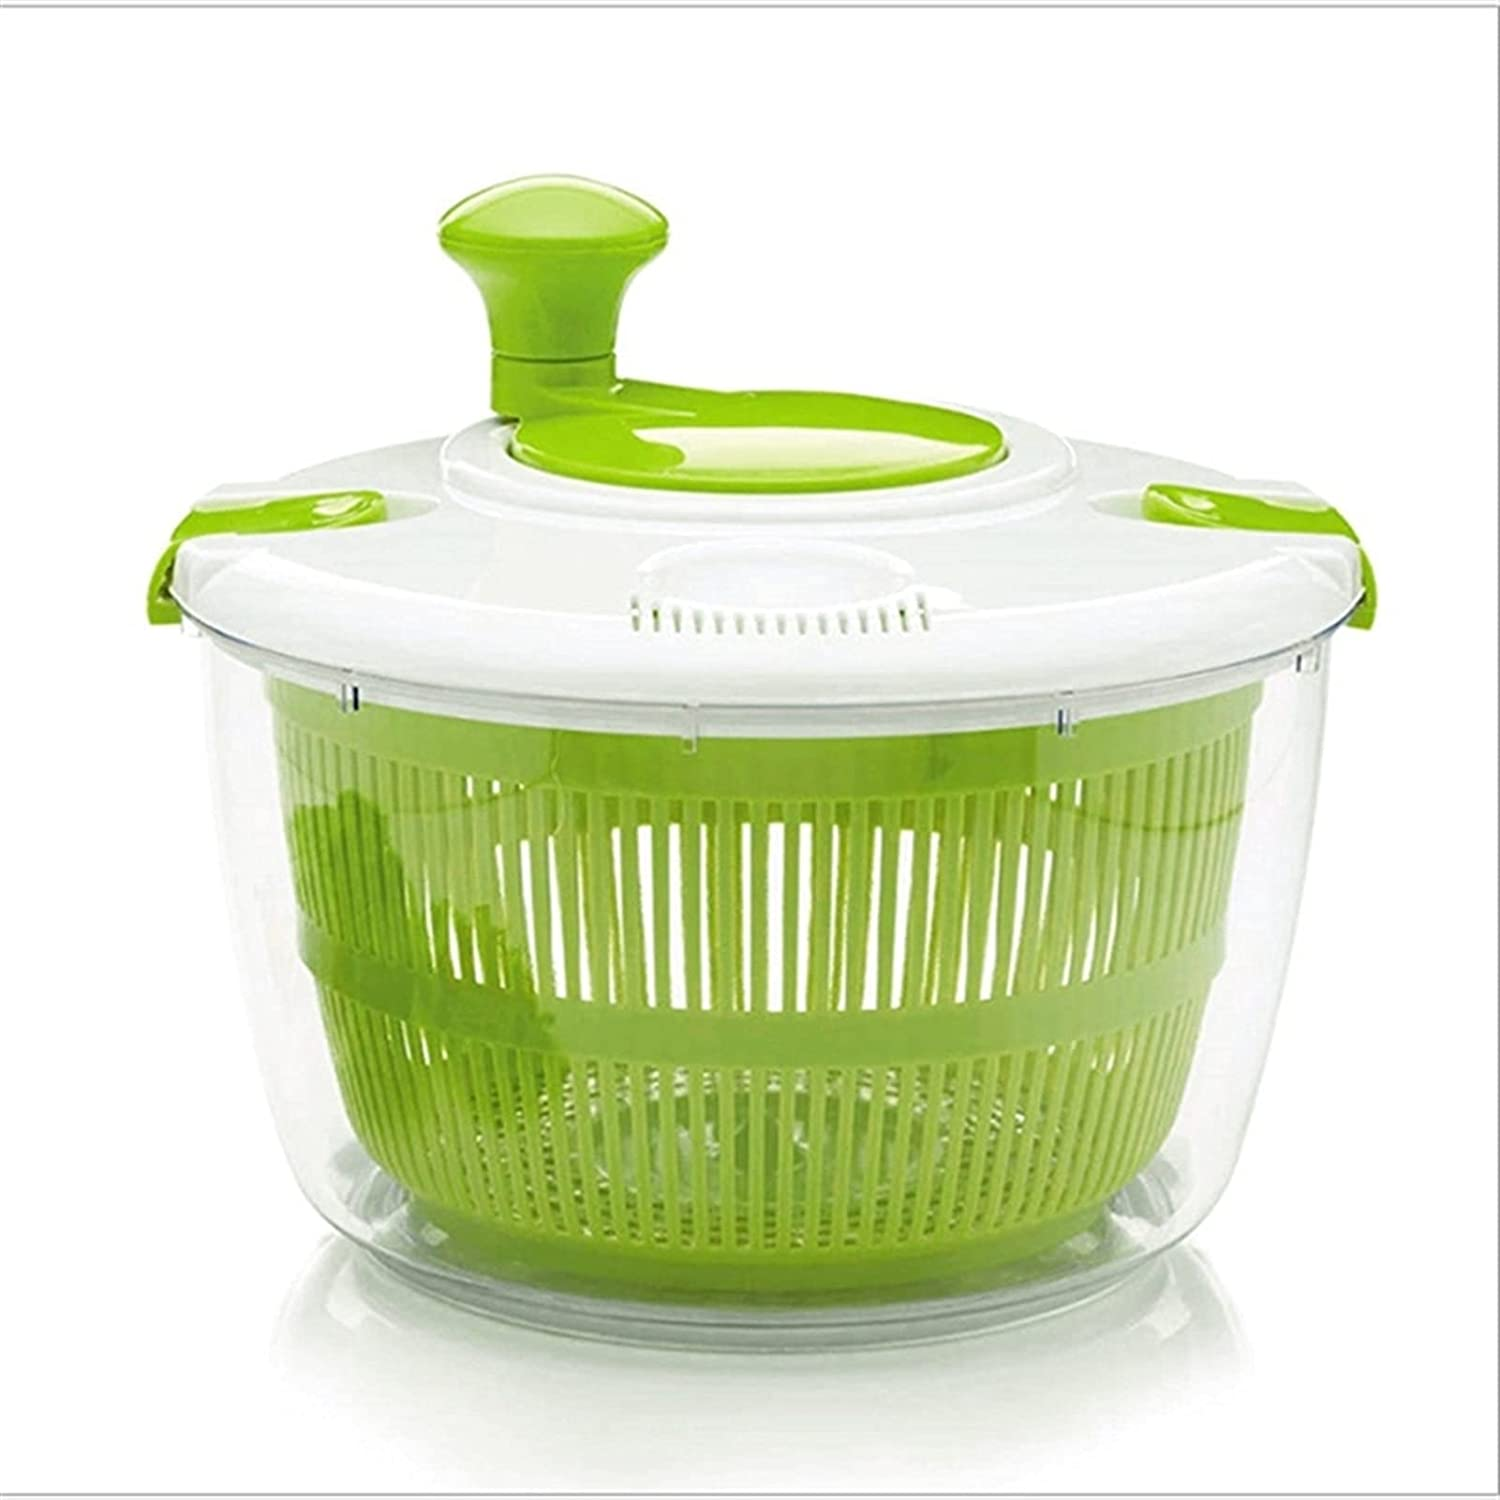 Salad Cheap mail order shopping Spinner Large Manual Le Dryer Drainer OFFicial site Washer